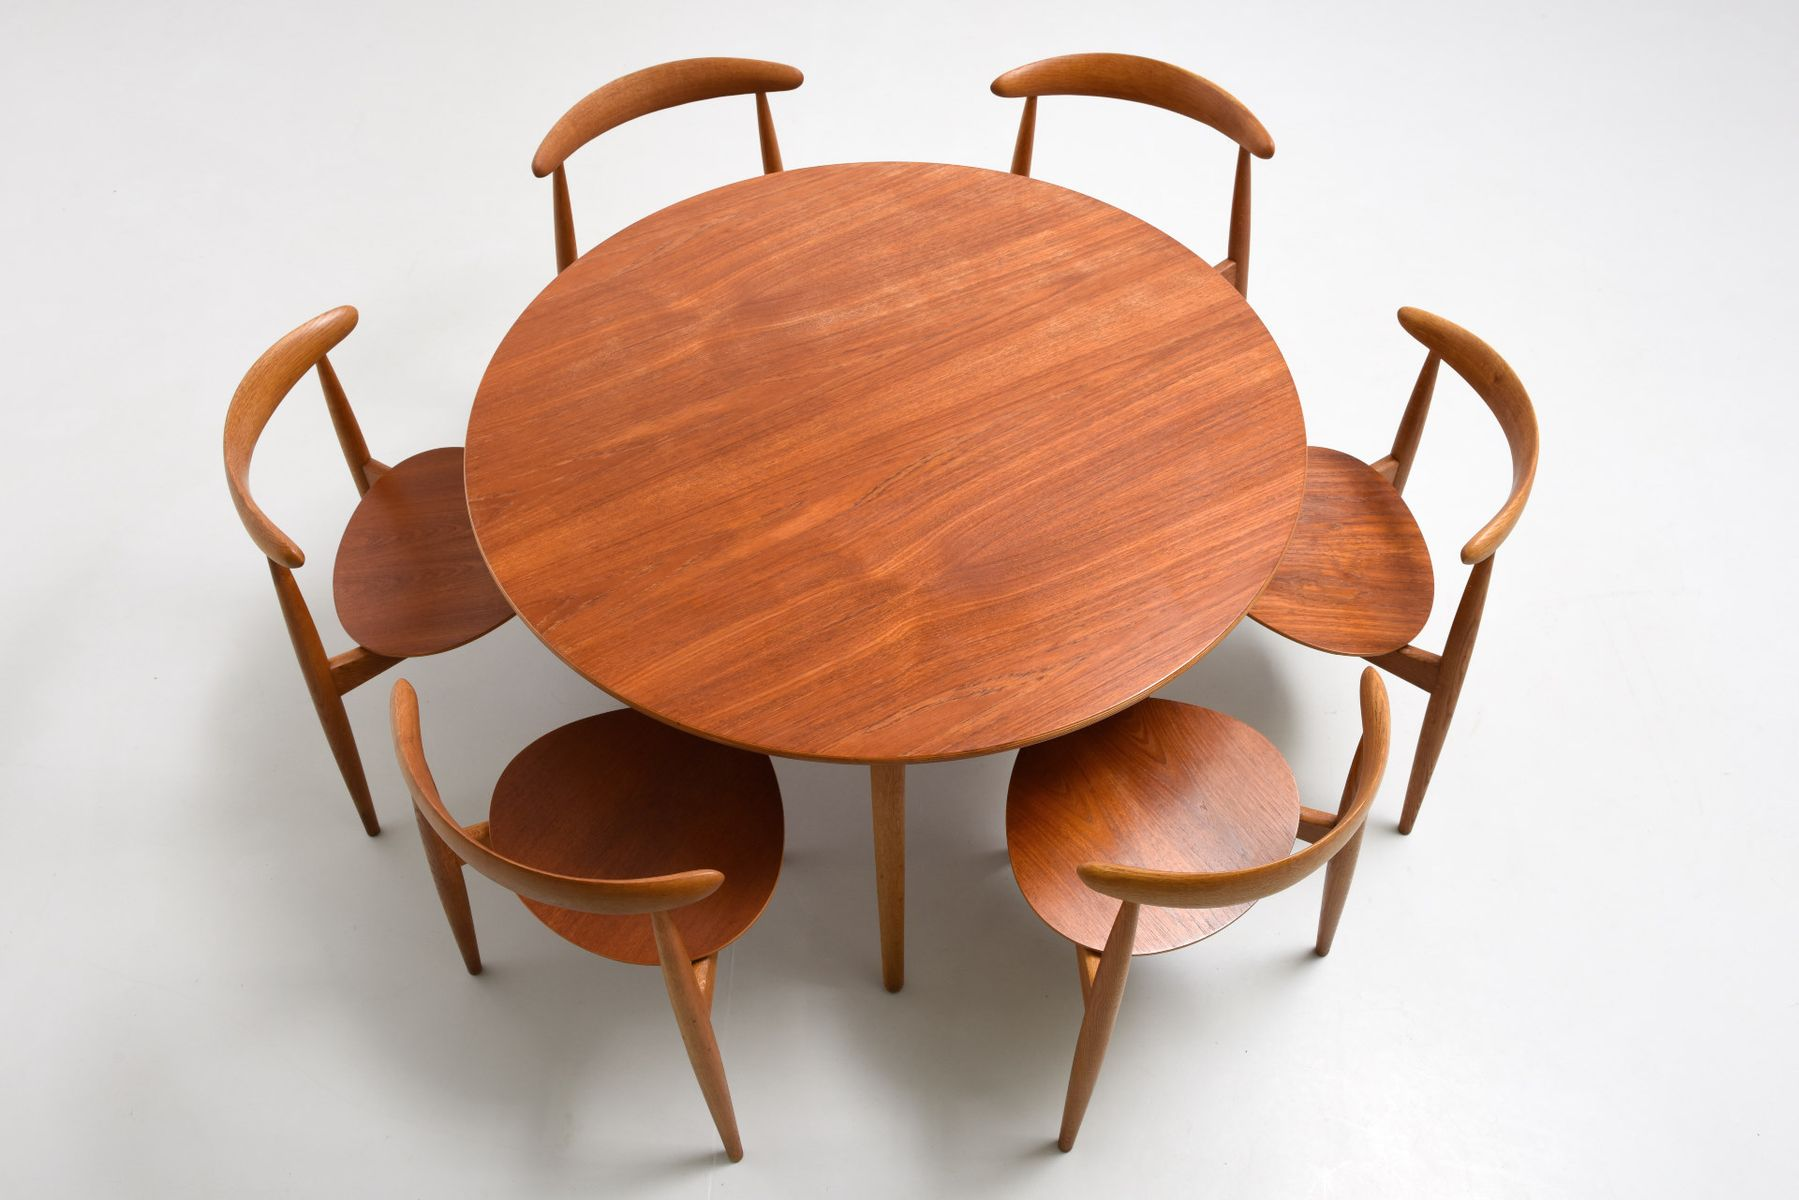 teak dining table and heart chairs by hans j wegner for. Black Bedroom Furniture Sets. Home Design Ideas